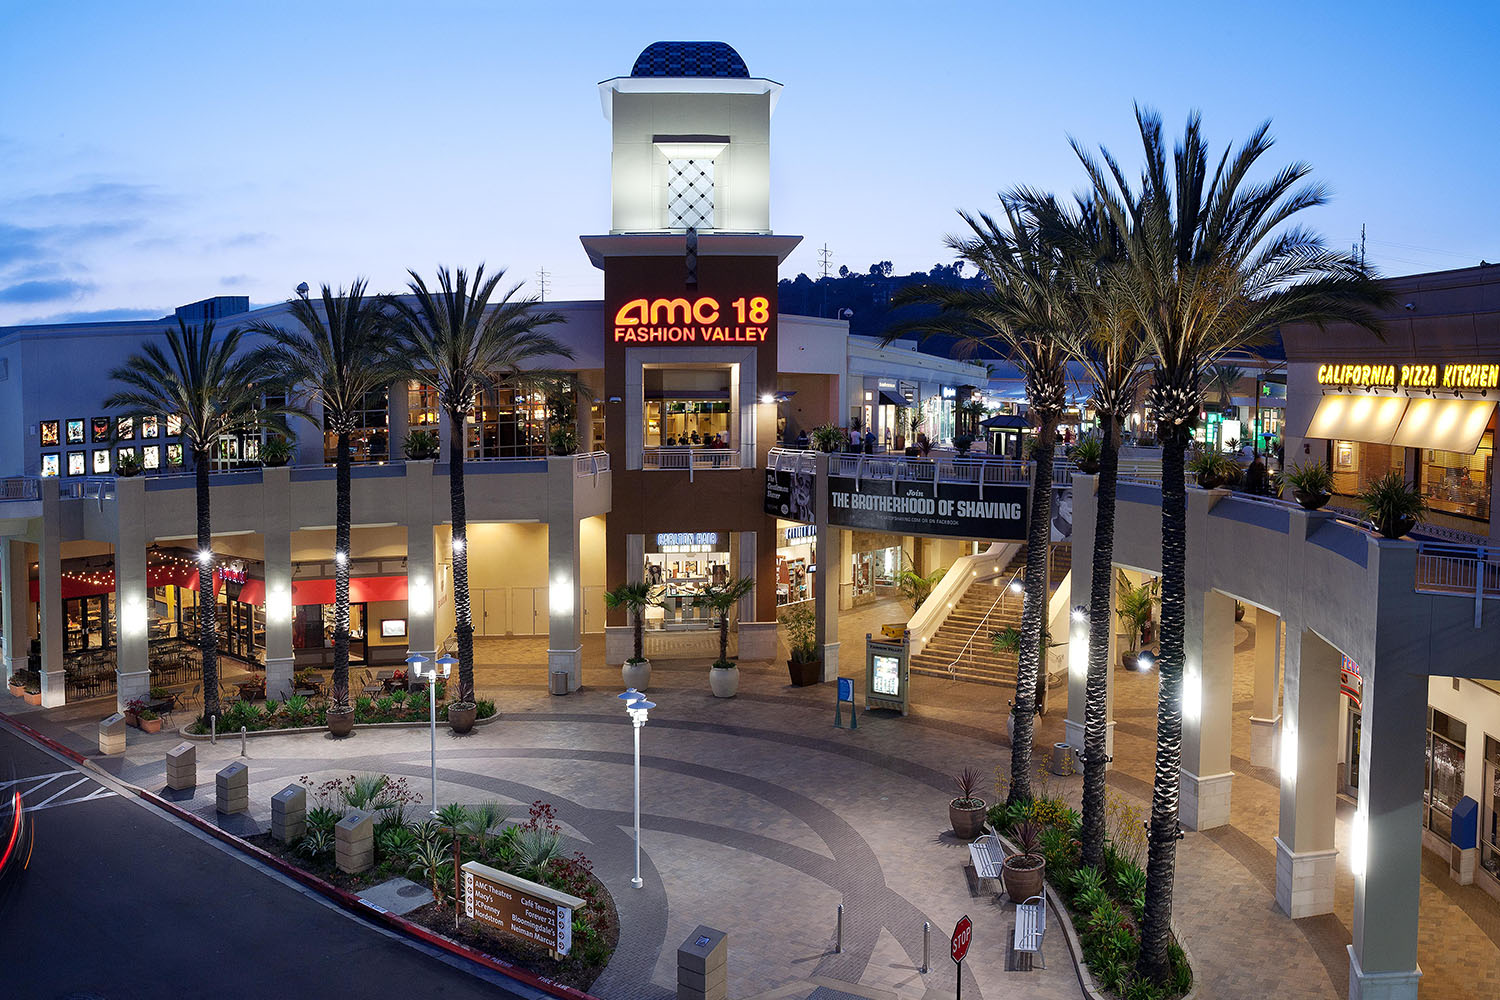 Strategically located on the world's busiest border crossing—San Diego, California and Tijuana, Mexico—with fashion brand stores, Las Americas Premium Outlets is the county's largest outlet mall. Retail outlet stores include Adidas, Ann Taylor, BCBG Max Azria, Hugo Boss, Coach, Hurley, Kenneth Cole, Tommy Hilfiger and more.